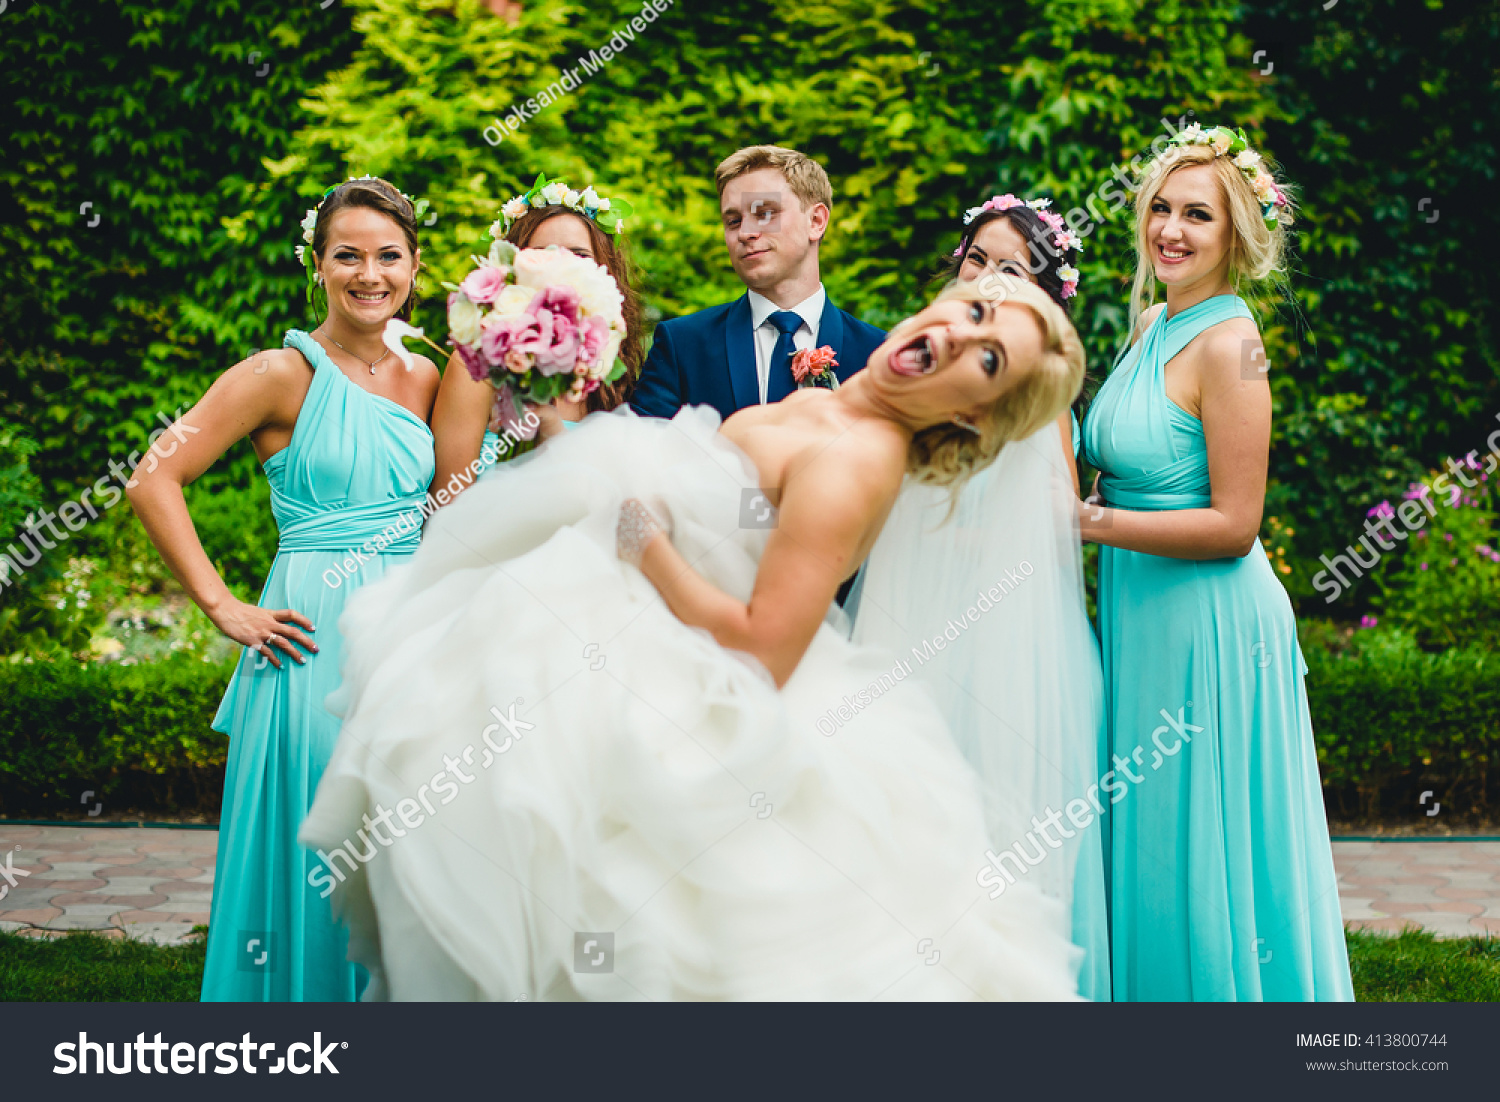 Funny Brides Face Stock Photo (Safe to Use) 413800744 - Shutterstock